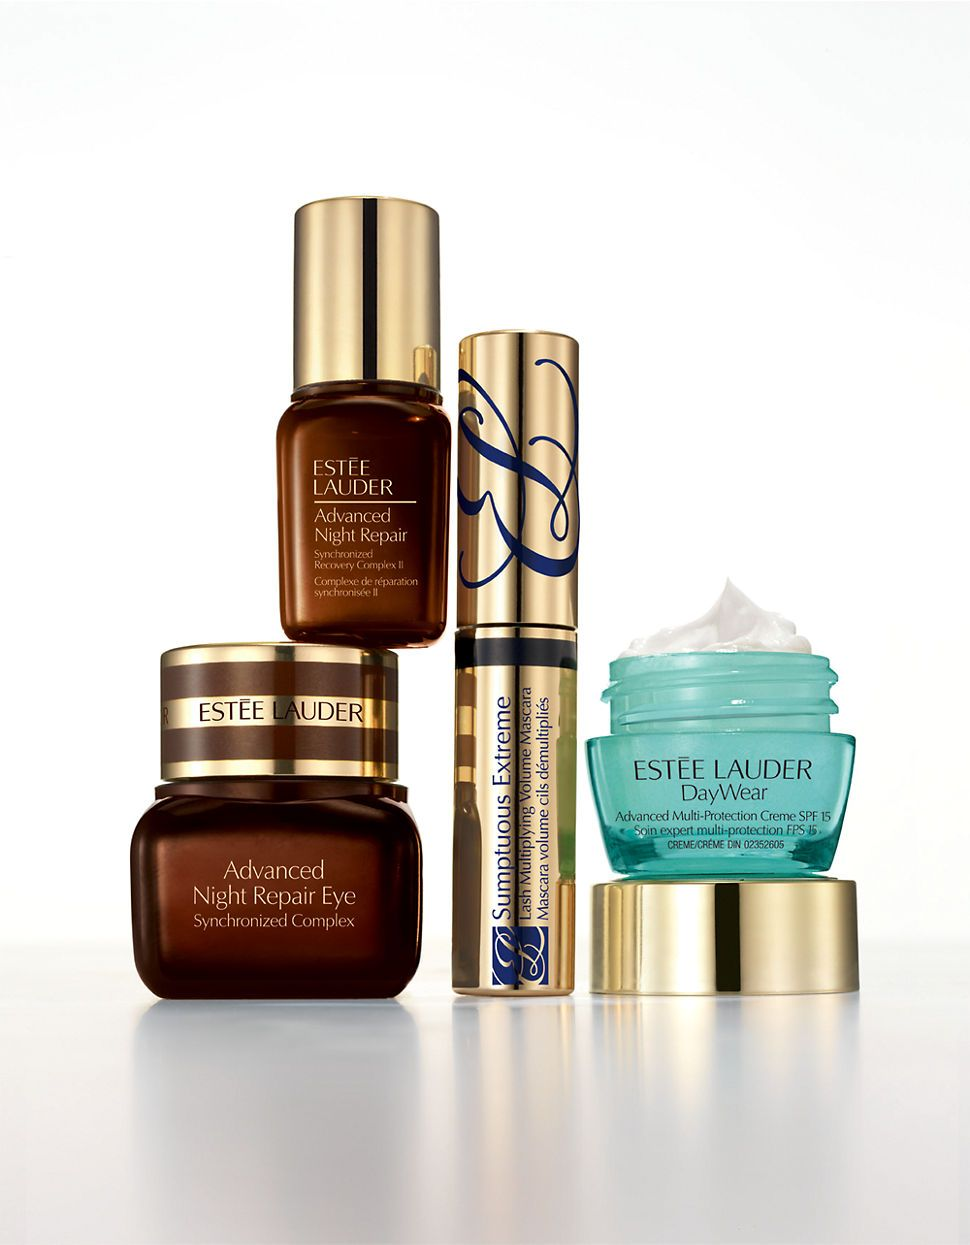 Estee Lauder Advanced Night Repair Ad